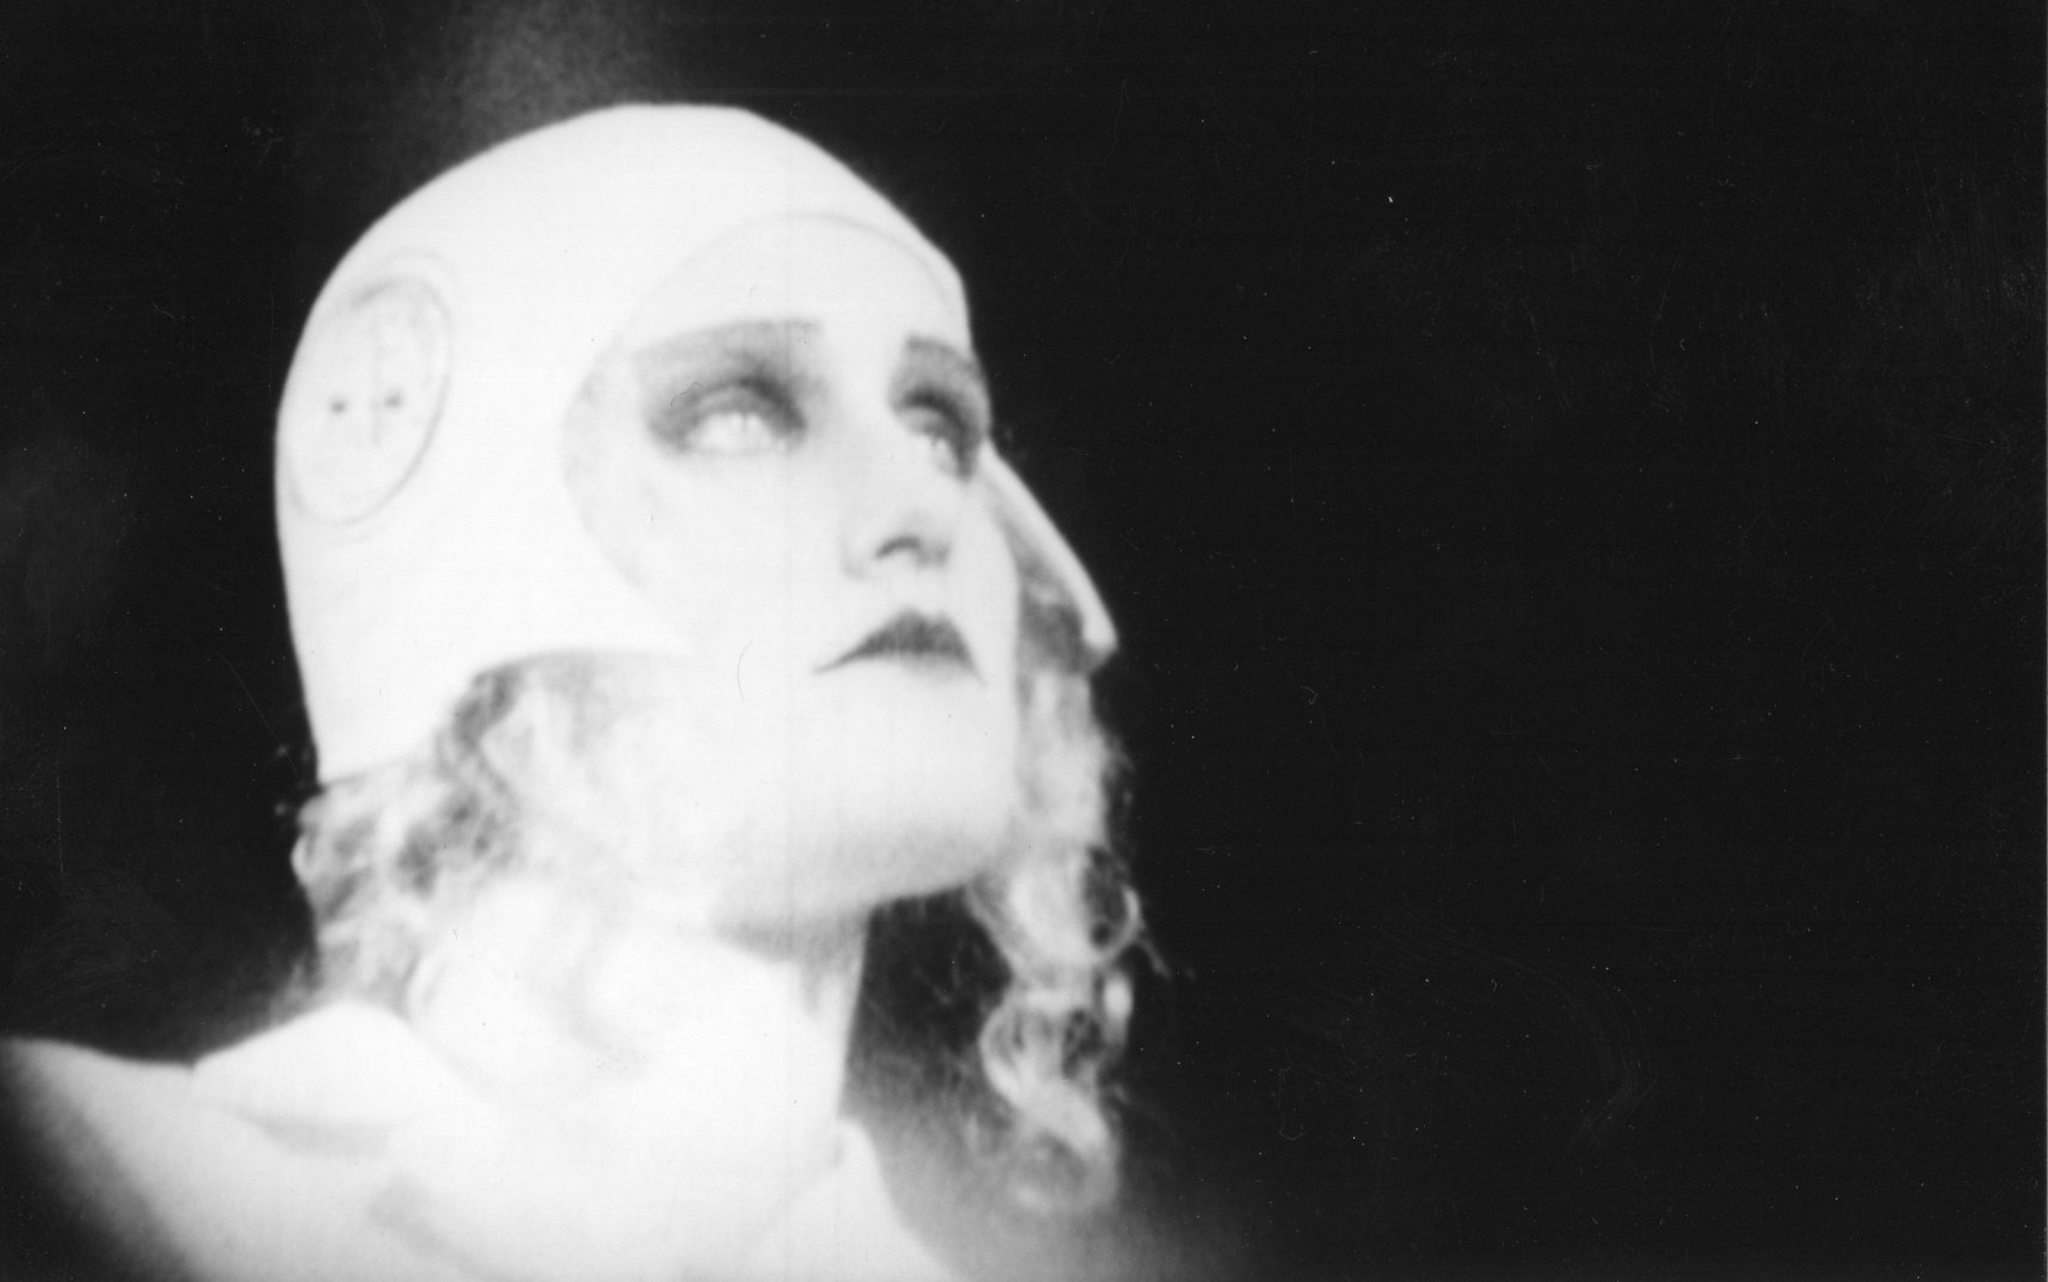 Guy Maddin&rsquo;s Heart of the World is one of the films featured at the Moving Images exhibit. Below, The Ephemerals offer a wry take on mass-market cultural appropriations.</p>